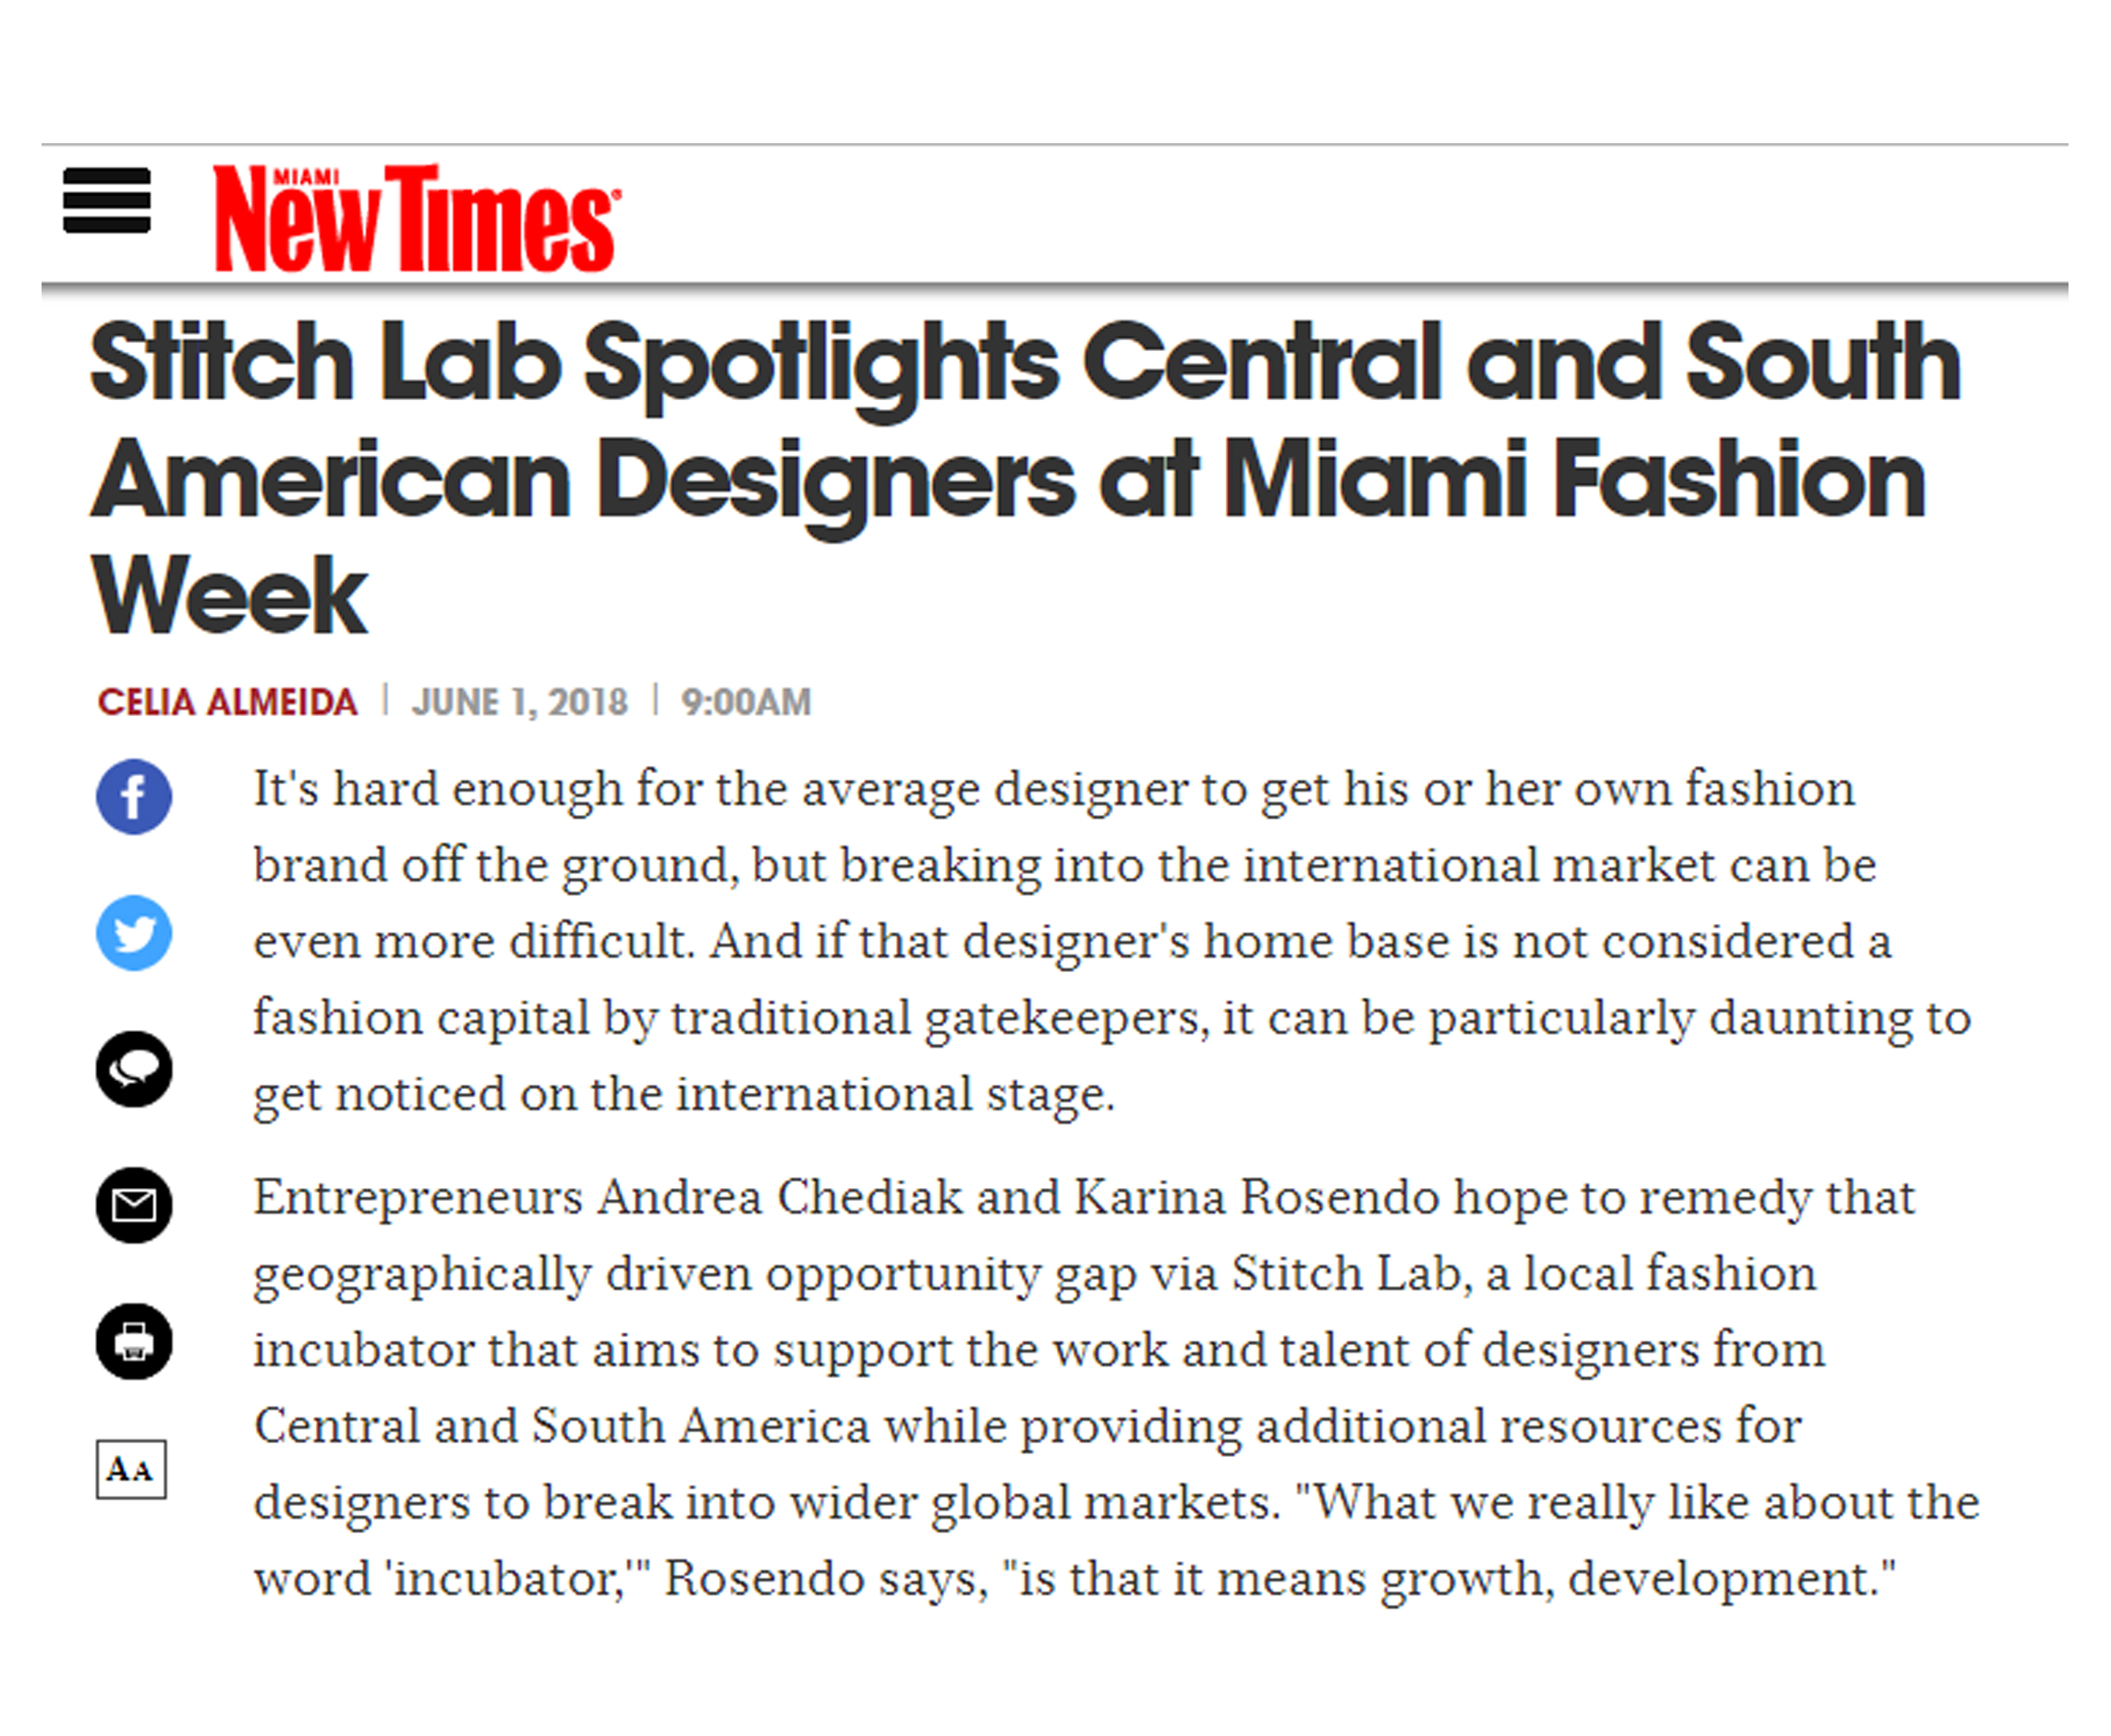 MIAMI NEW TIMES - Entrepreneurs Andrea Chediak and Karina Rosendo hope to remedy that geographically driven opportunity gap via Stitch Lab, a local fashion incubator that aims to support the work and talent of designers from Central and South America while providing additional resources for designers to break into wider global markets.